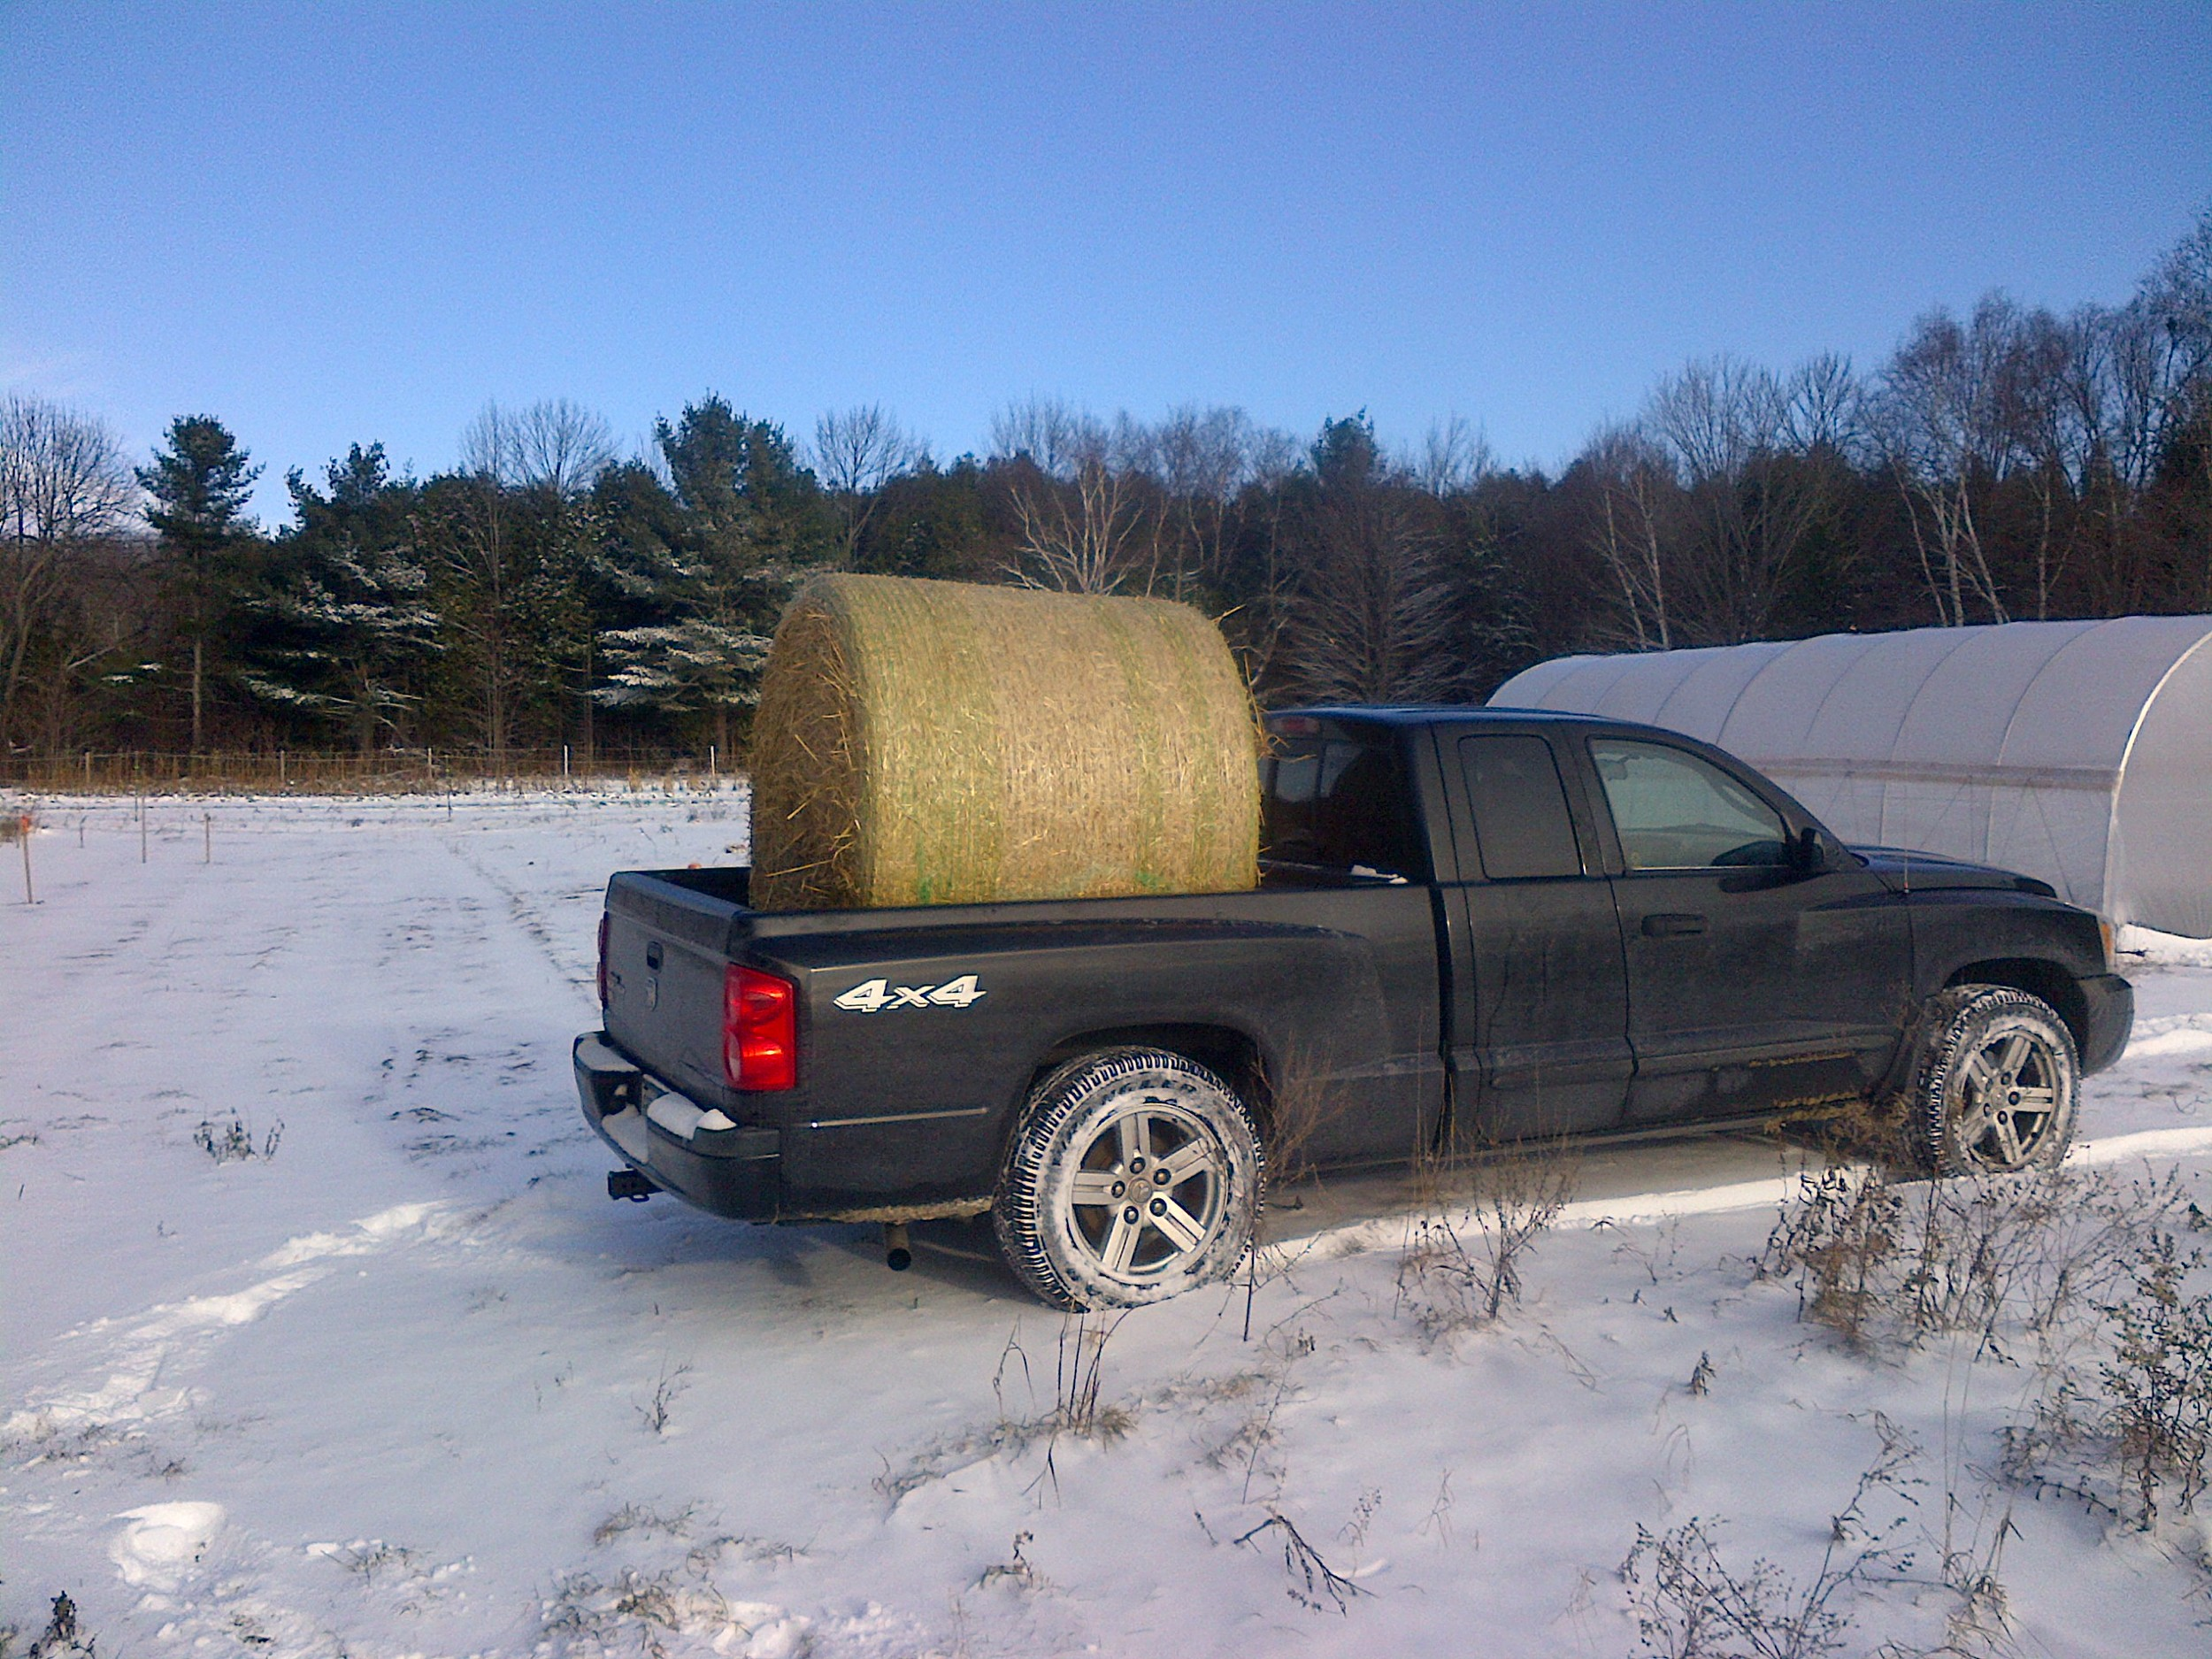 Straw delivery